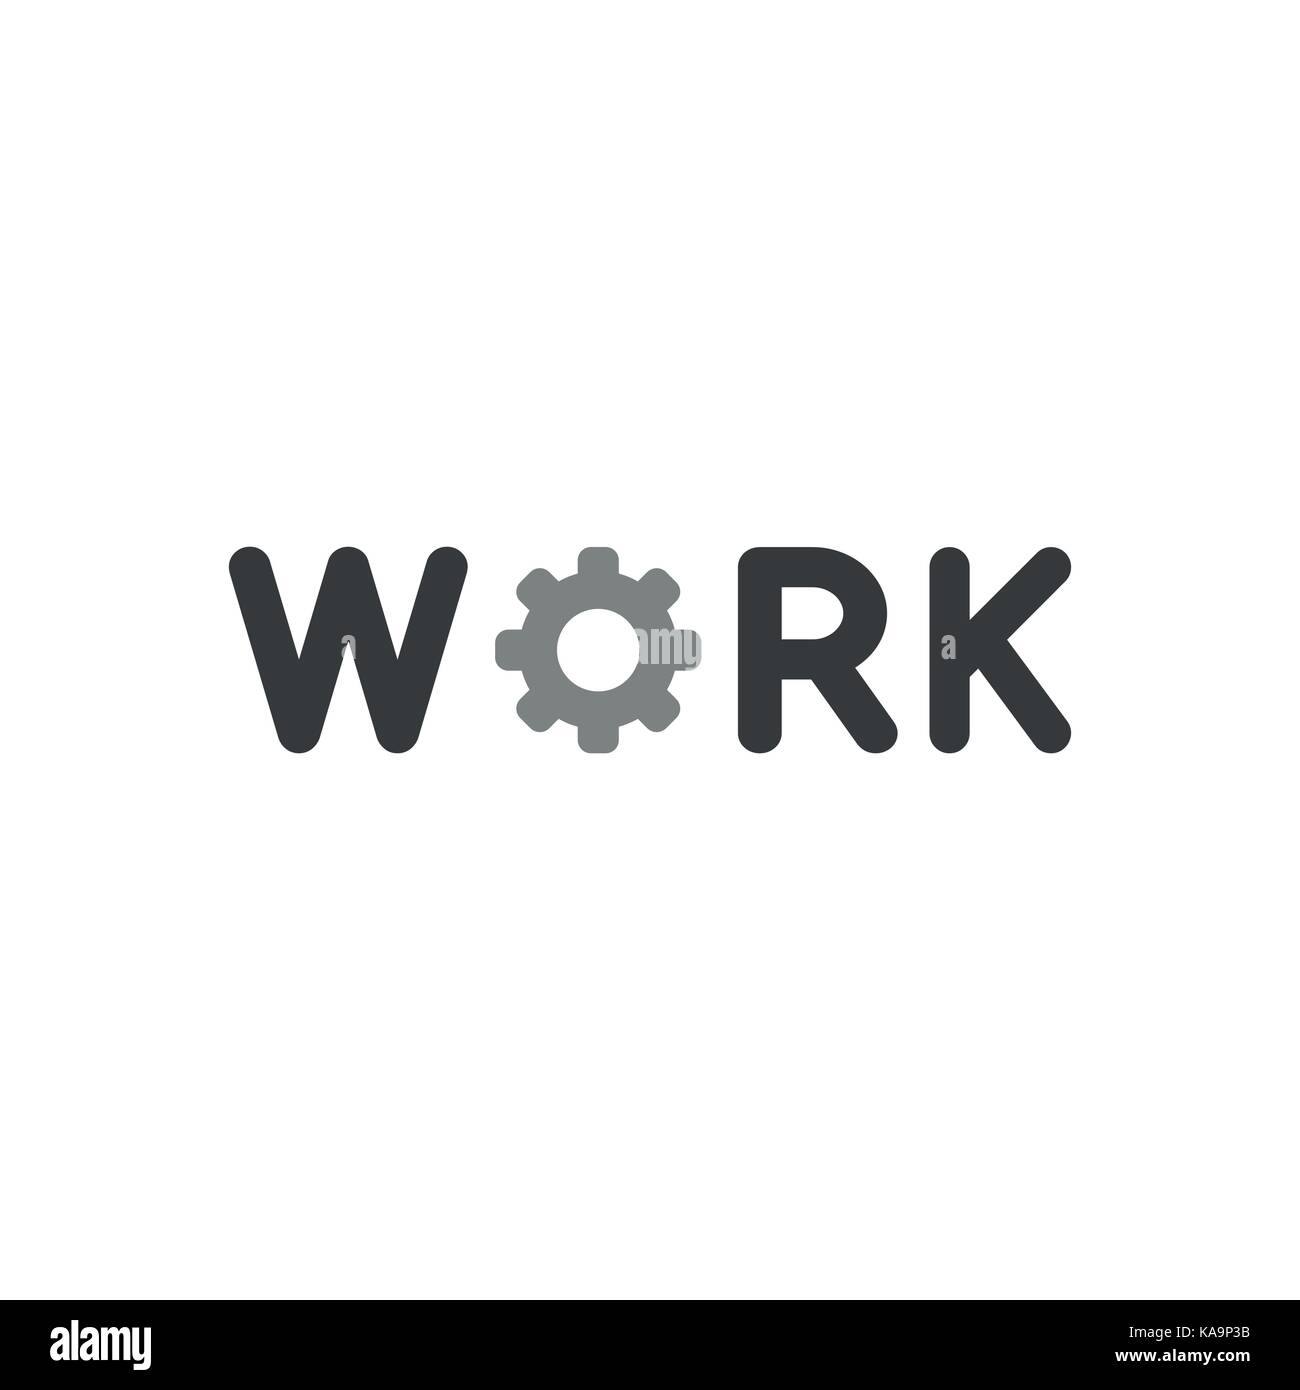 Workingman vector vectors stock photos workingman vector vectors flat design style vector illustration concept of black work text with grey gear symbol icon on biocorpaavc Images